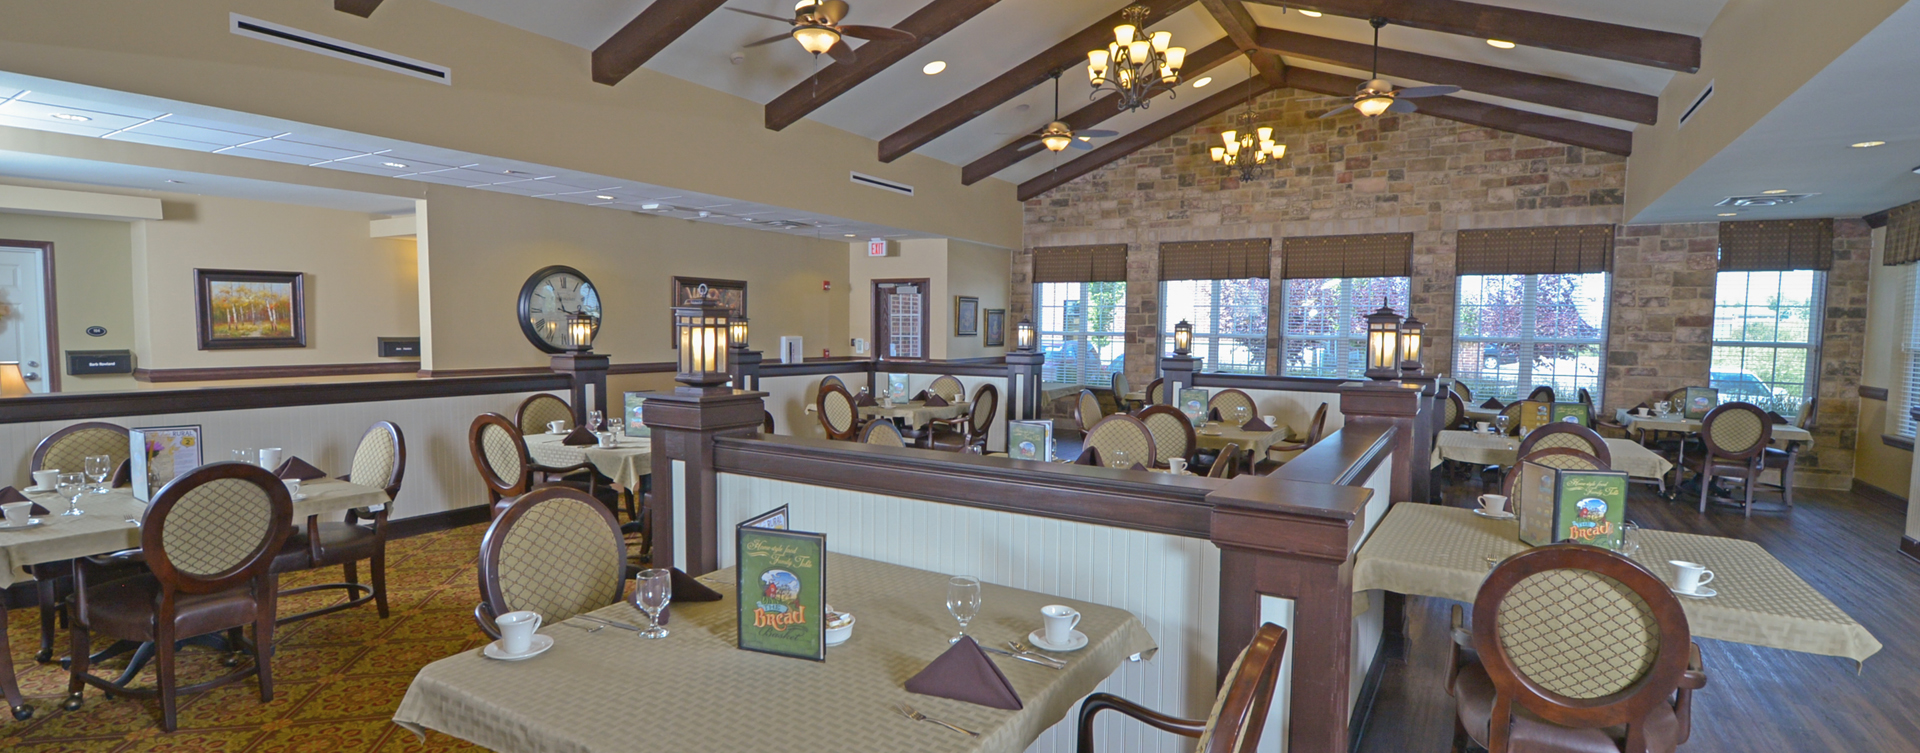 Enjoy restaurant -style meals served three times a day in our dining room at Bickford of Crown Point